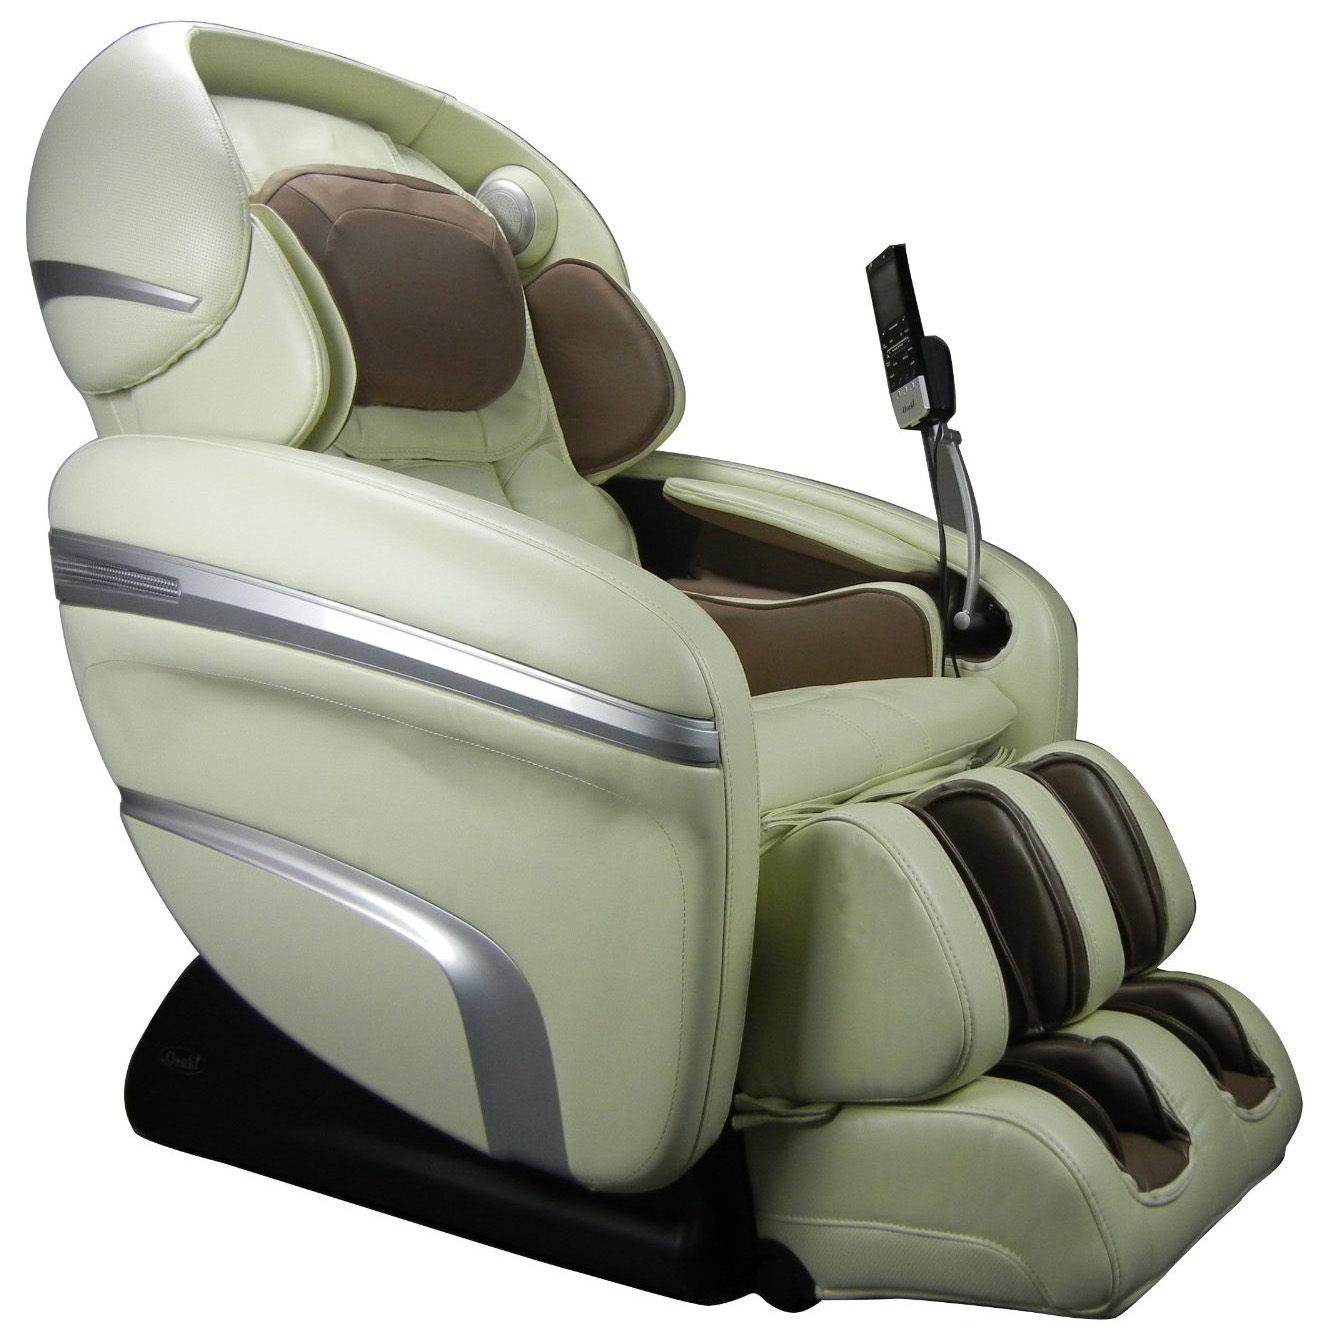 Osaki Massage Chairs Osaki Os 3d Pro Dreamer Zero Gravity Massage Chair